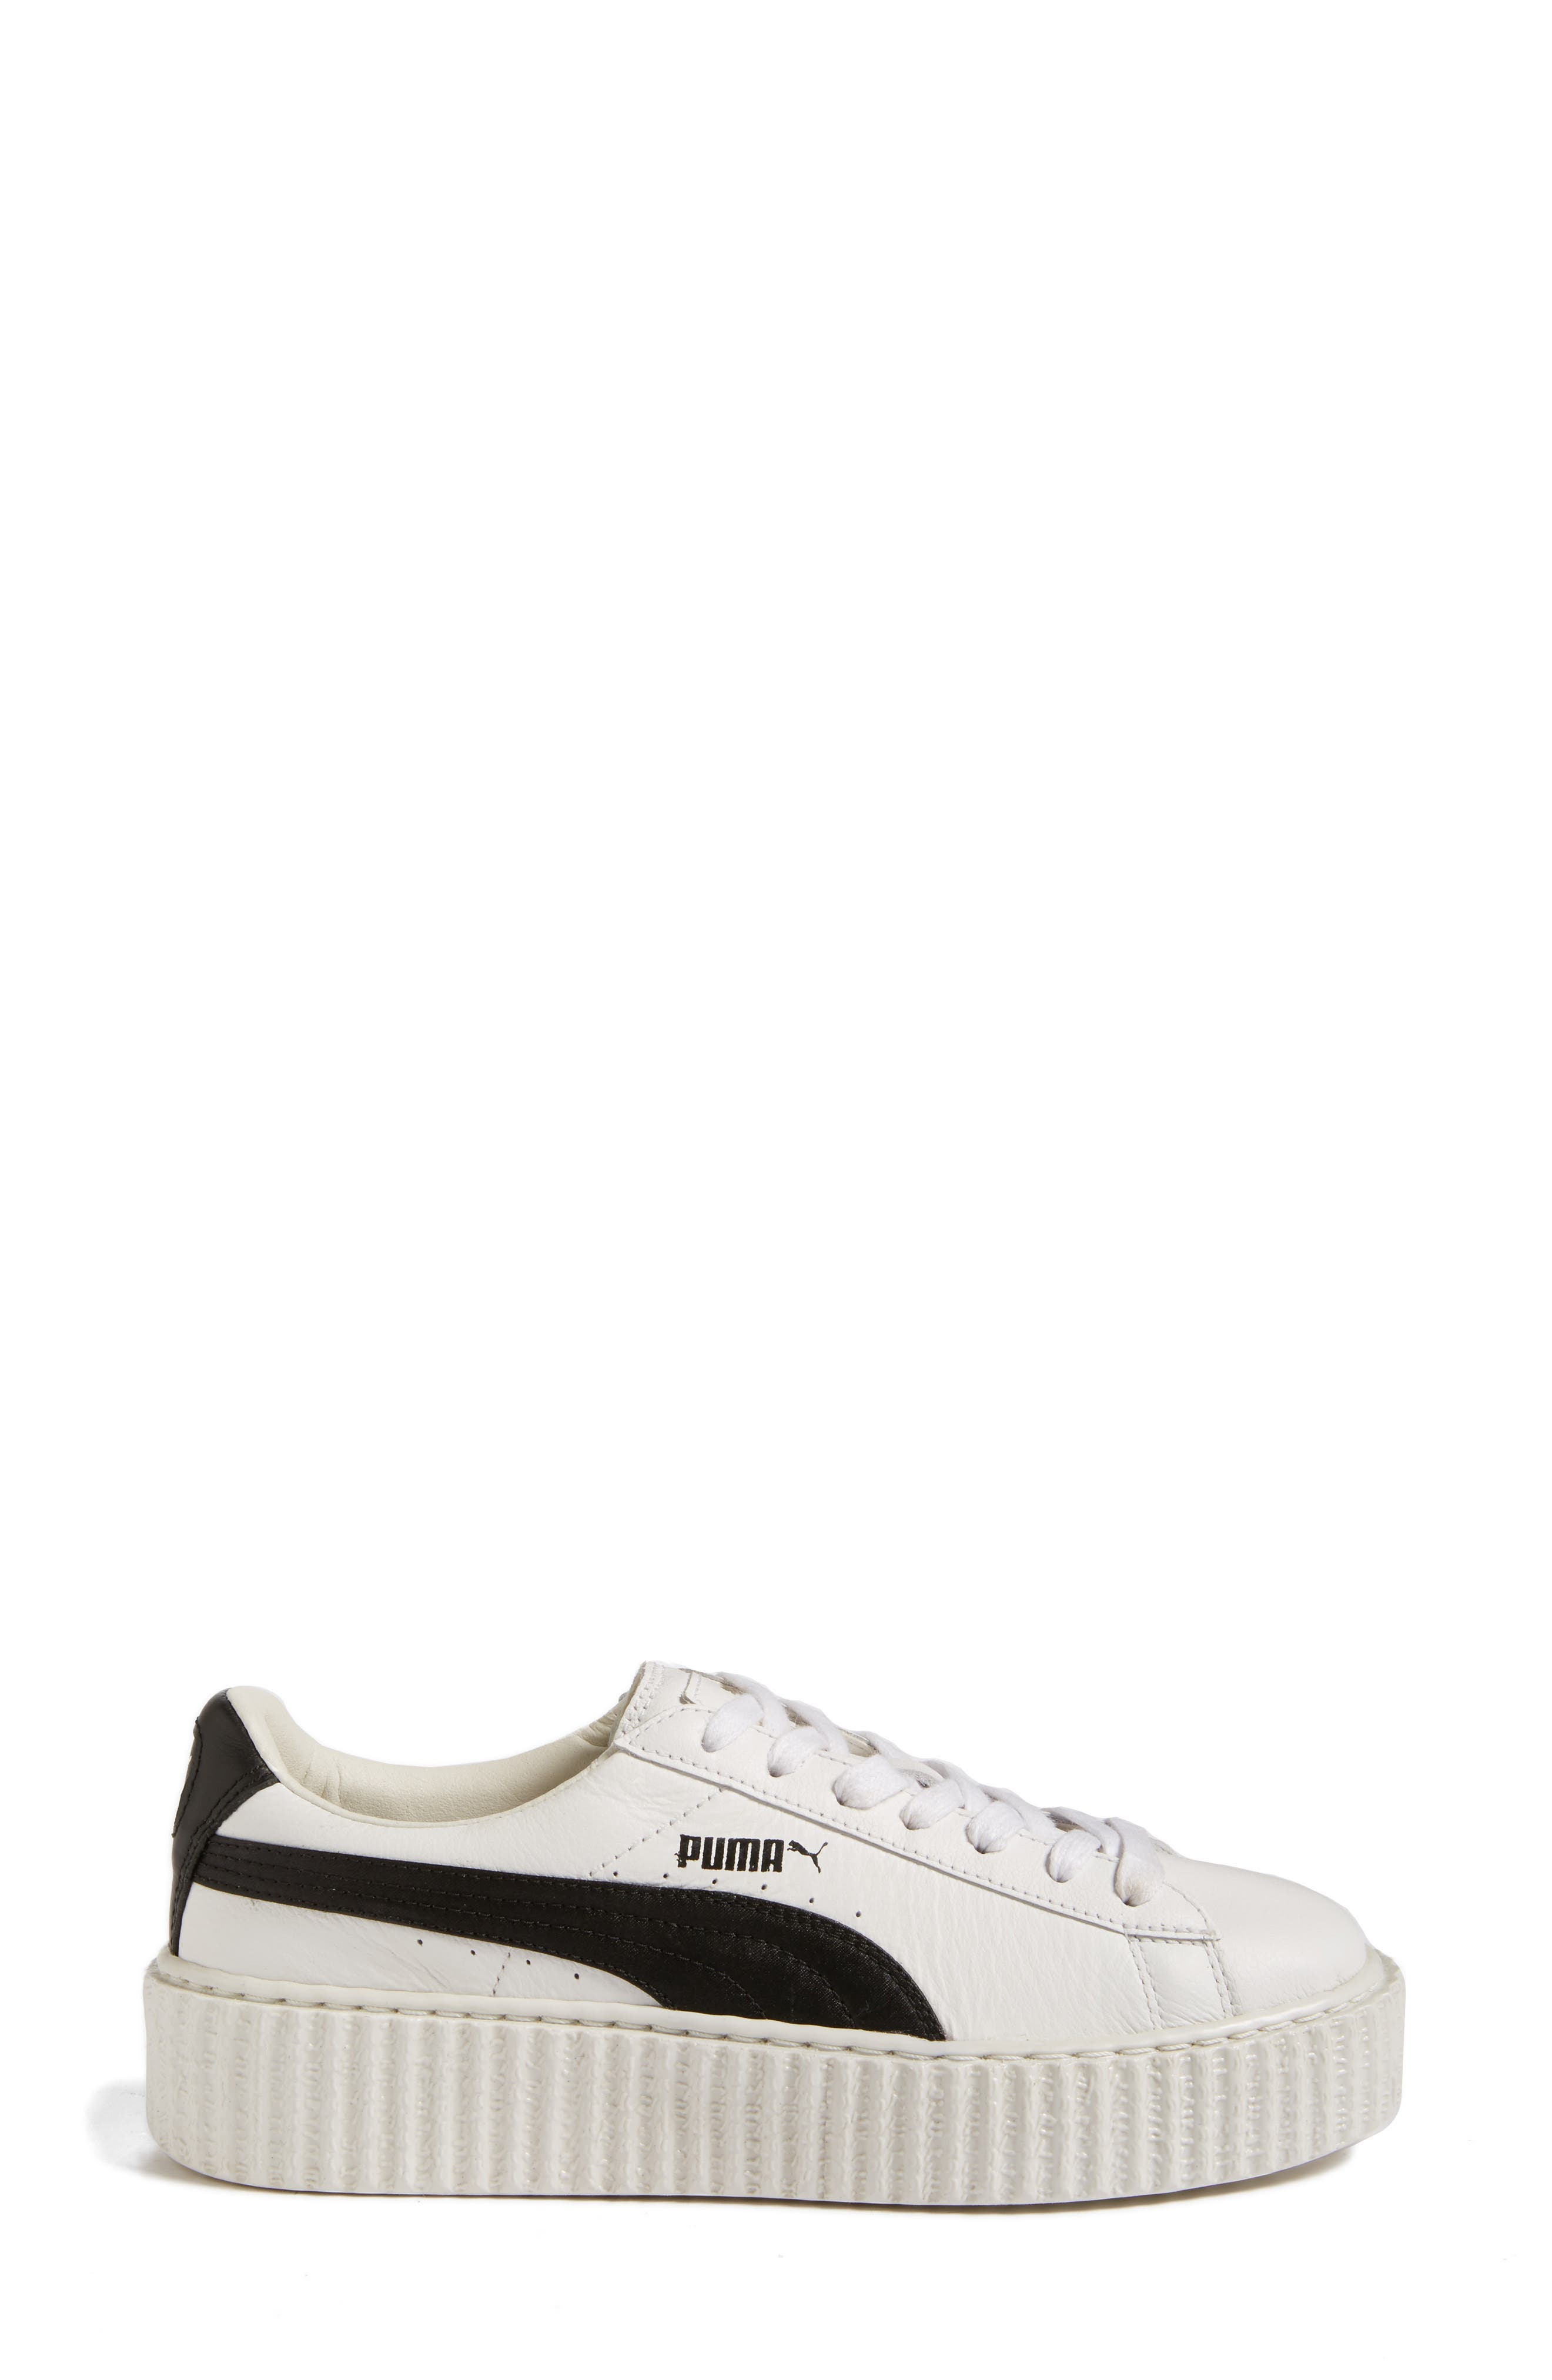 FENTY PUMA by Rihanna Creeper Sneaker,                             Alternate thumbnail 3, color,                             White Leather